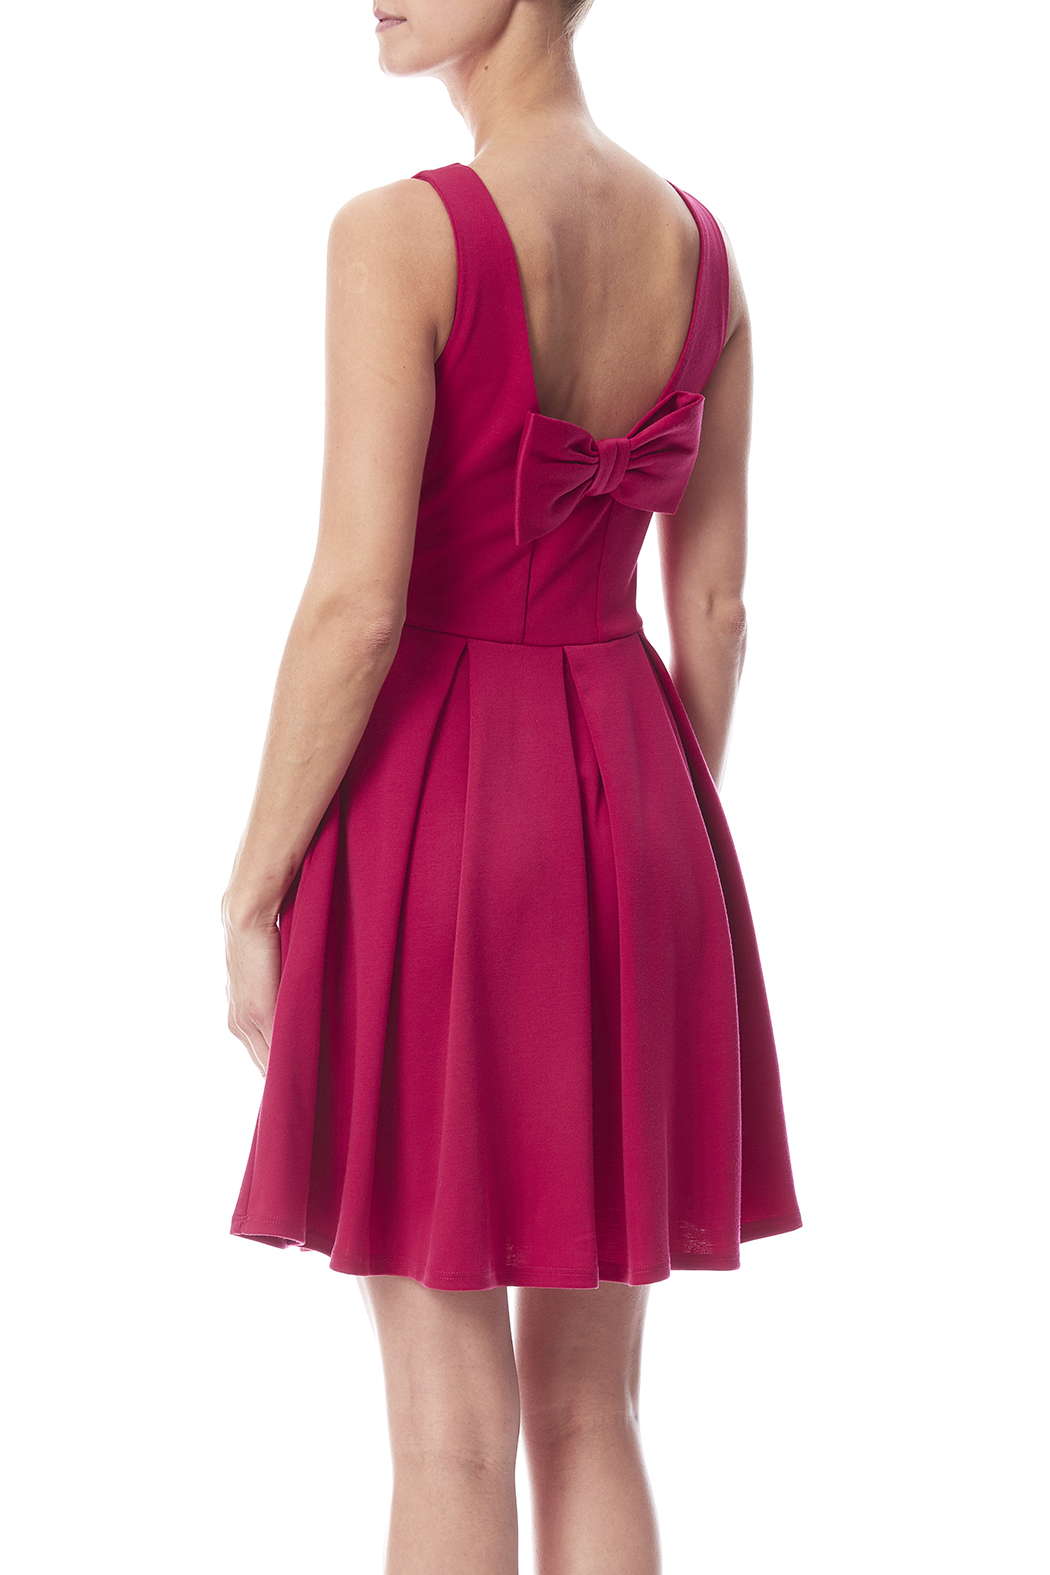 Apricity January Dress Fuchsia - Back Cropped Image